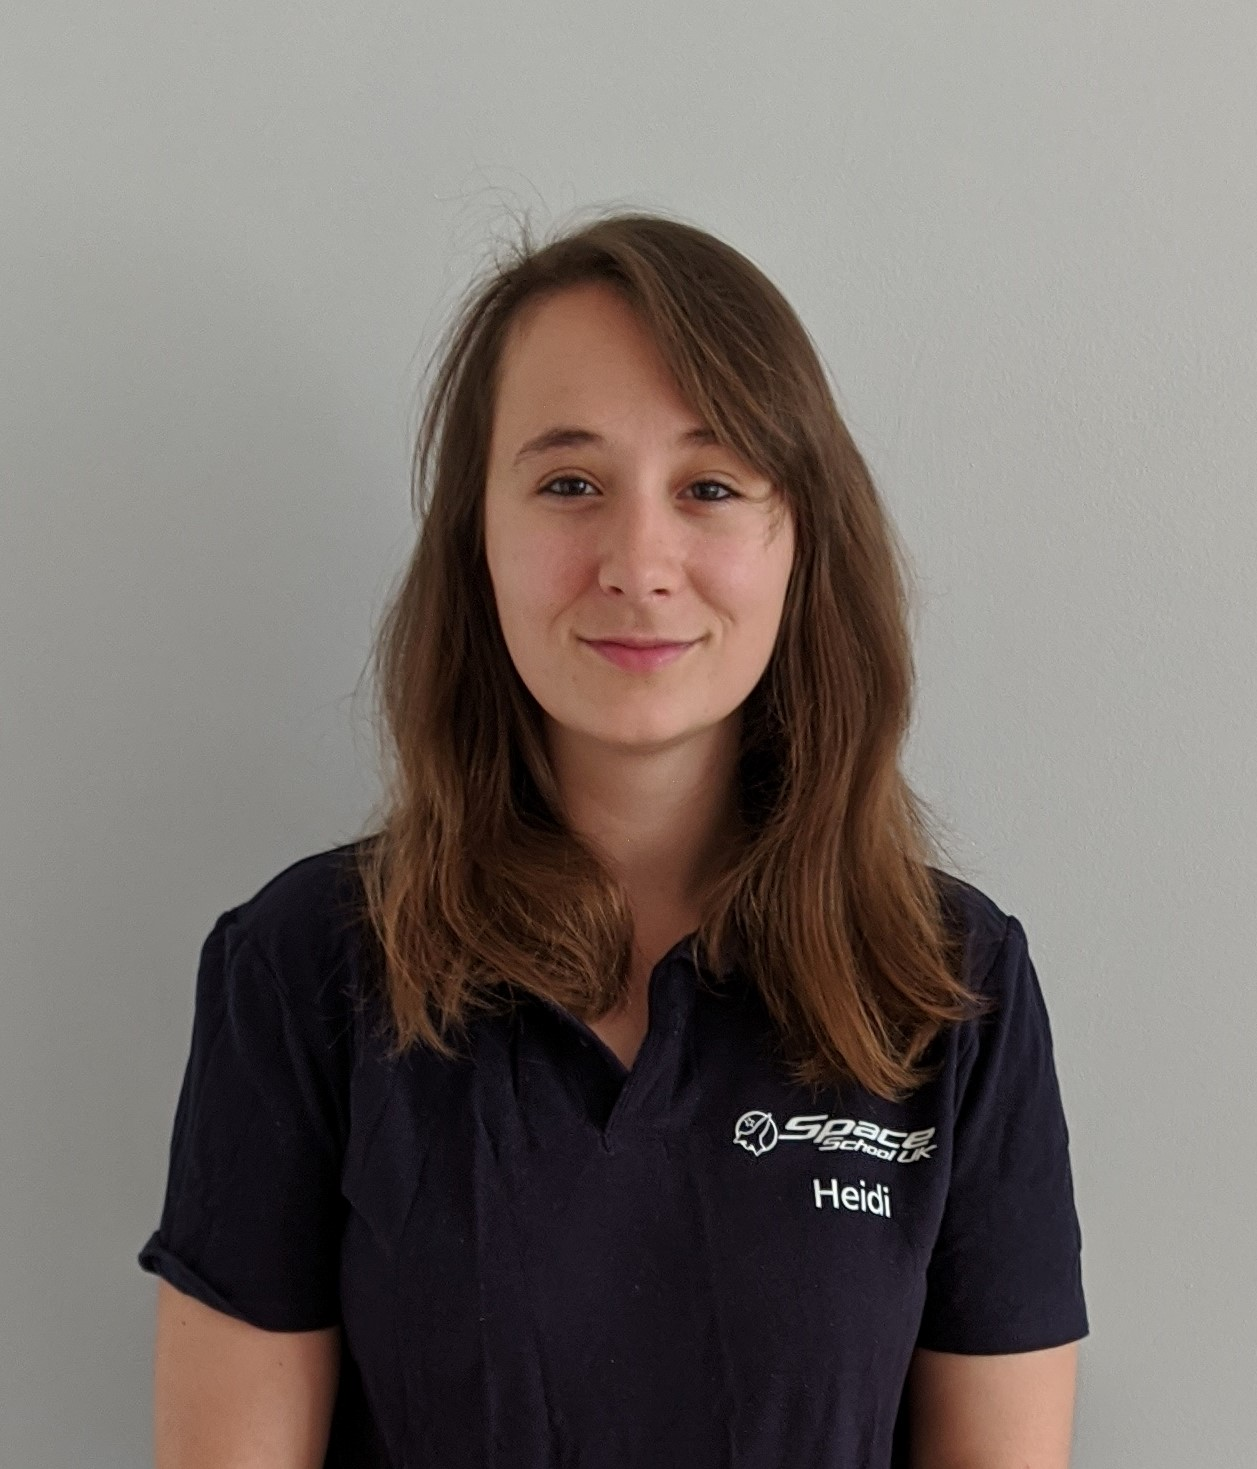 - Space Partnerships project manager Heidi Thiemann - Space tech training coming to Cornwall